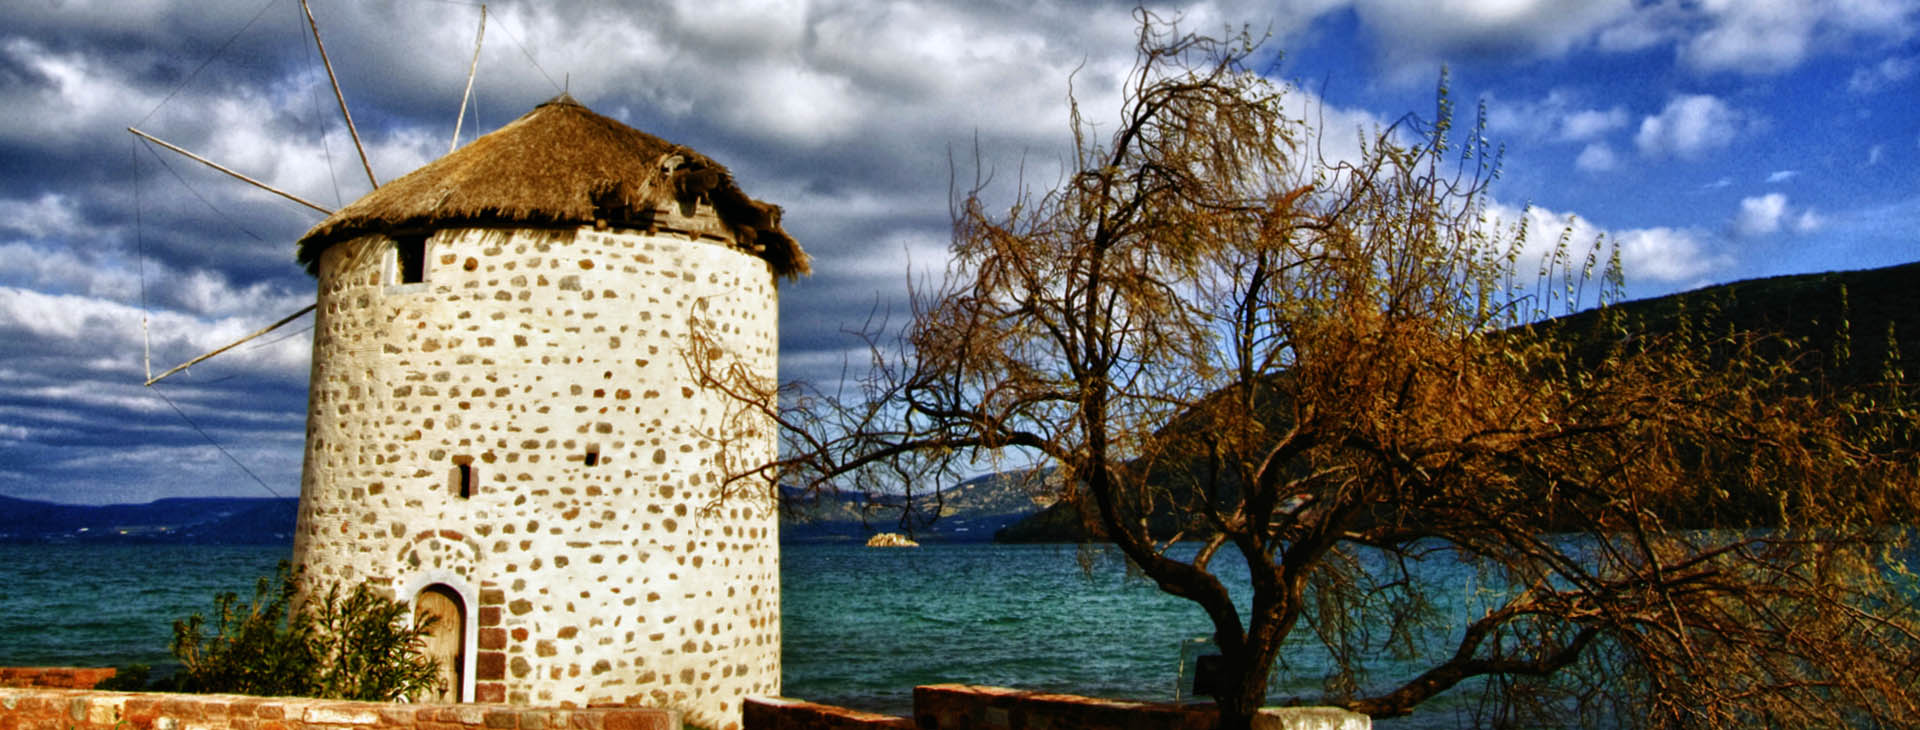 Old windmill at Geras' gulf, Lesvos island